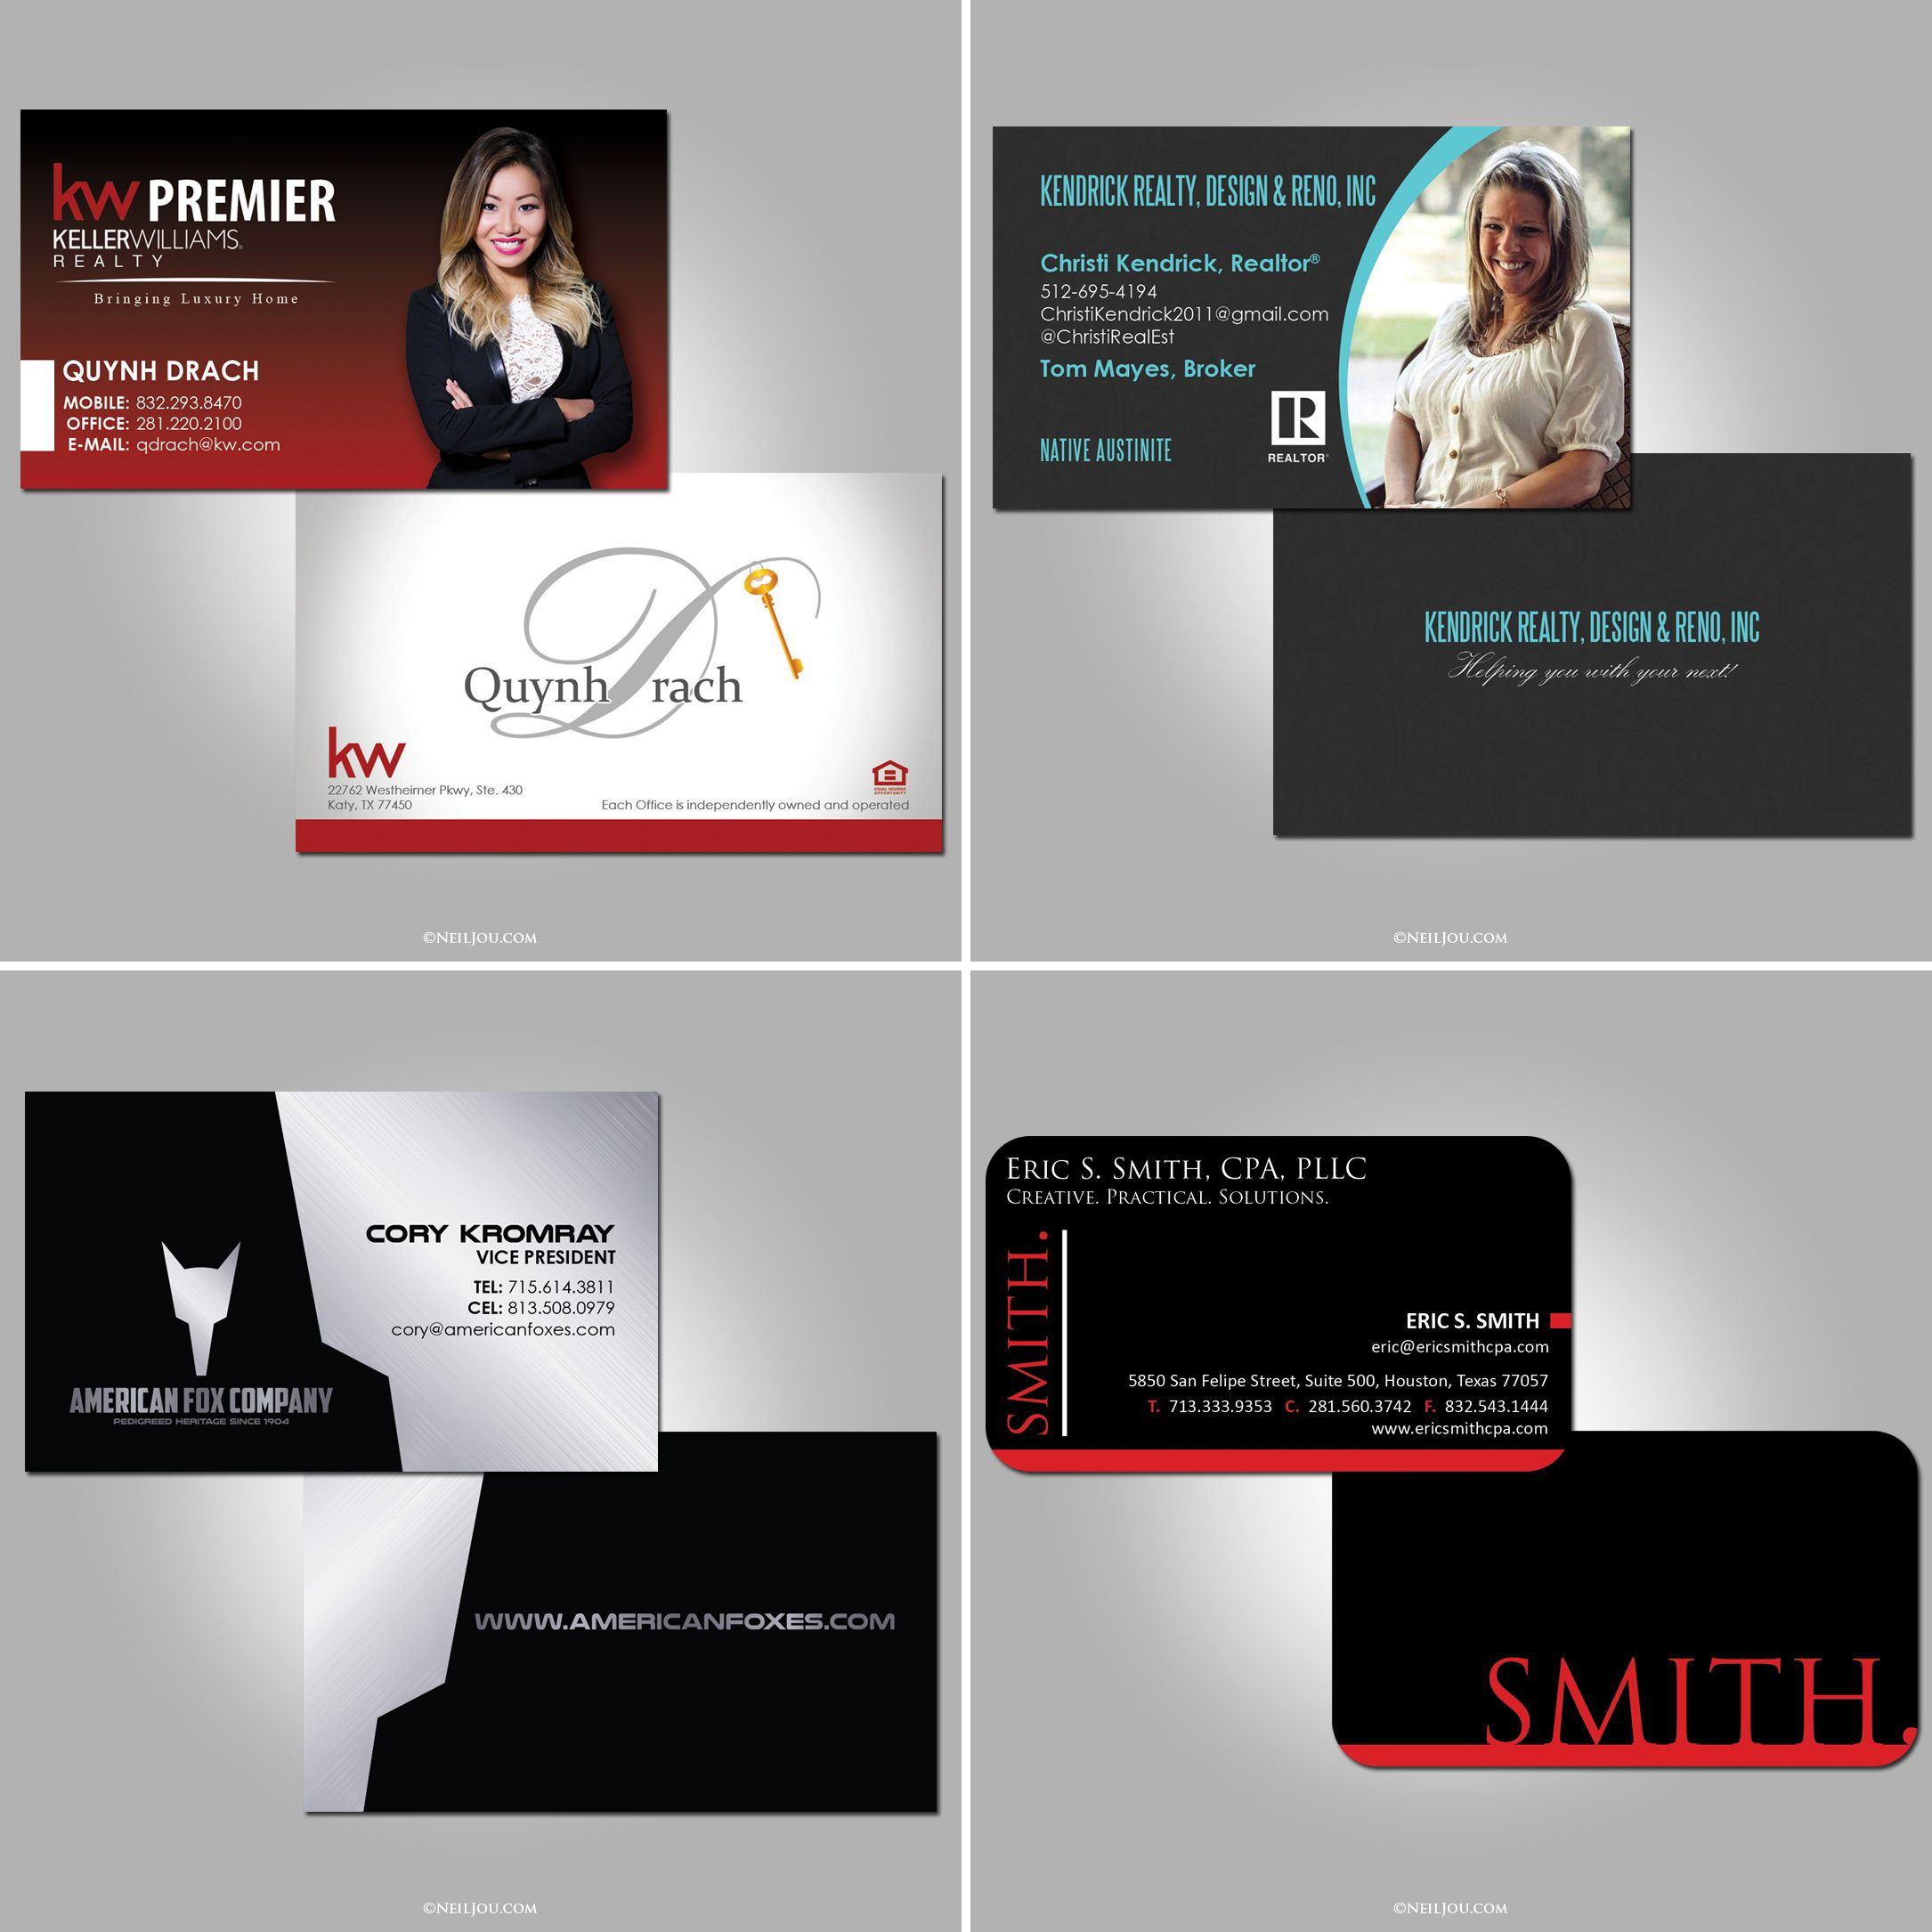 Latest business cards design. Production by @neiljouproductions ...